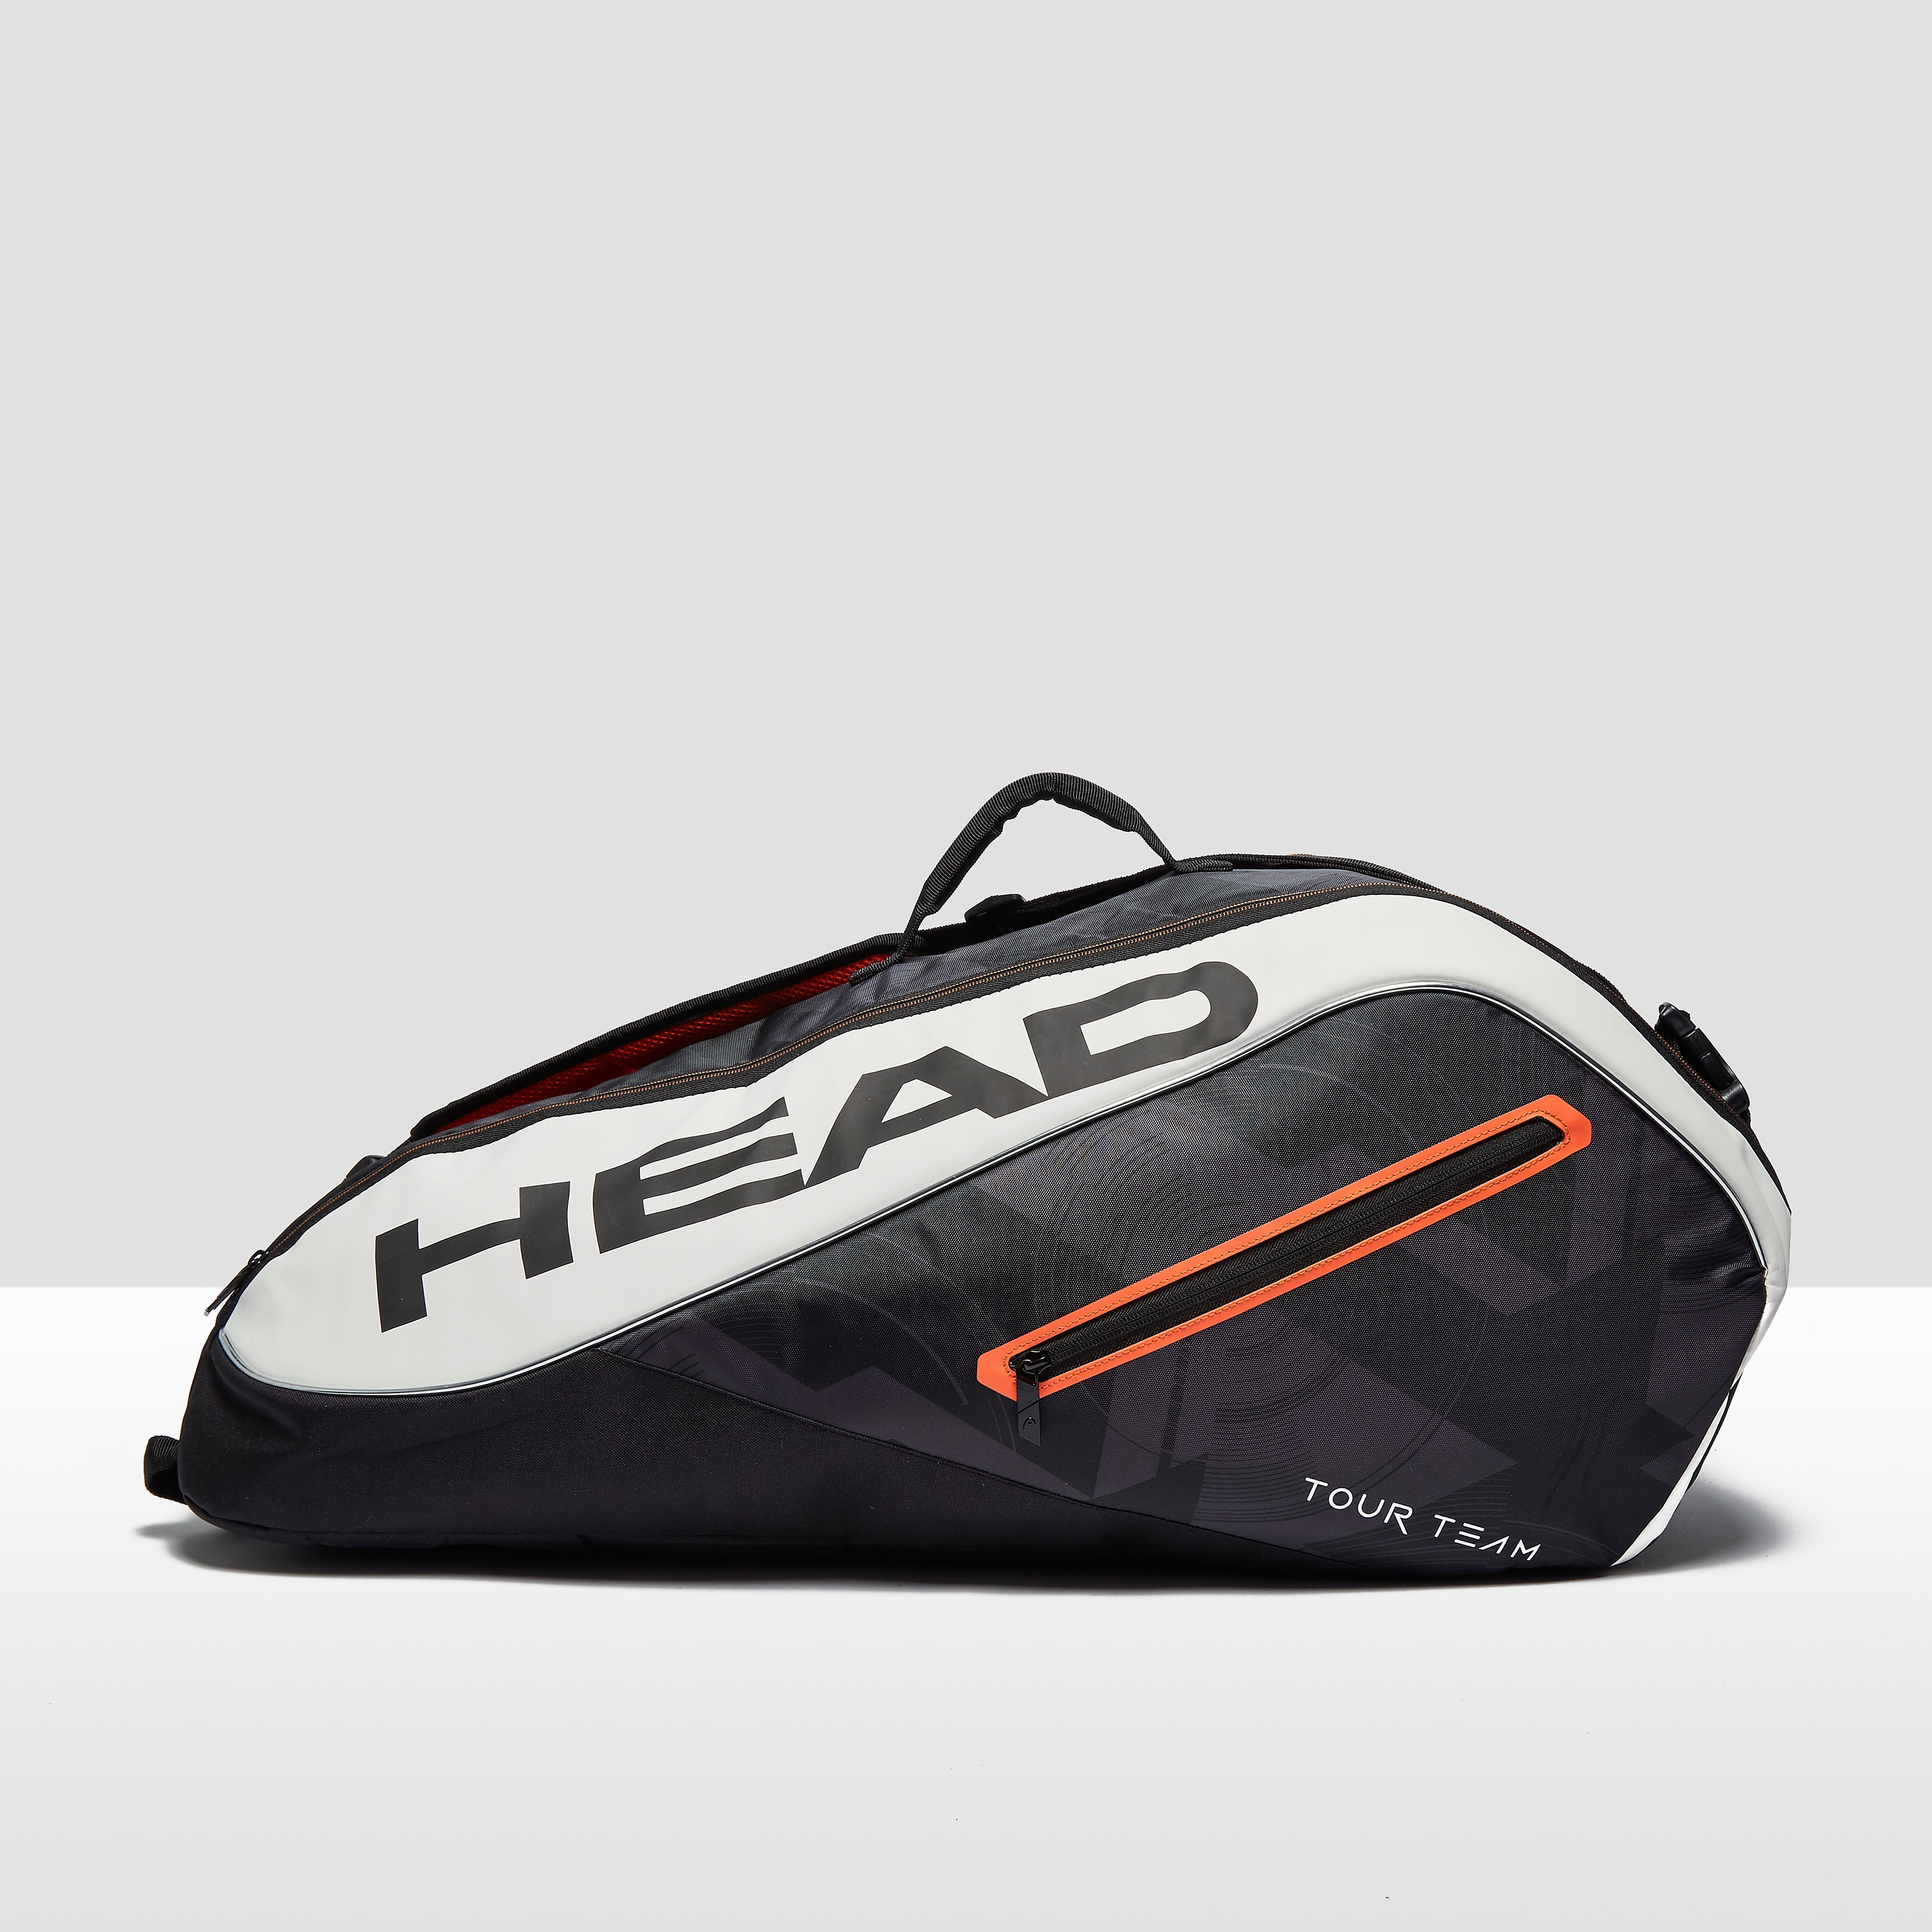 Head Tour Team 6R Combi Racketbag